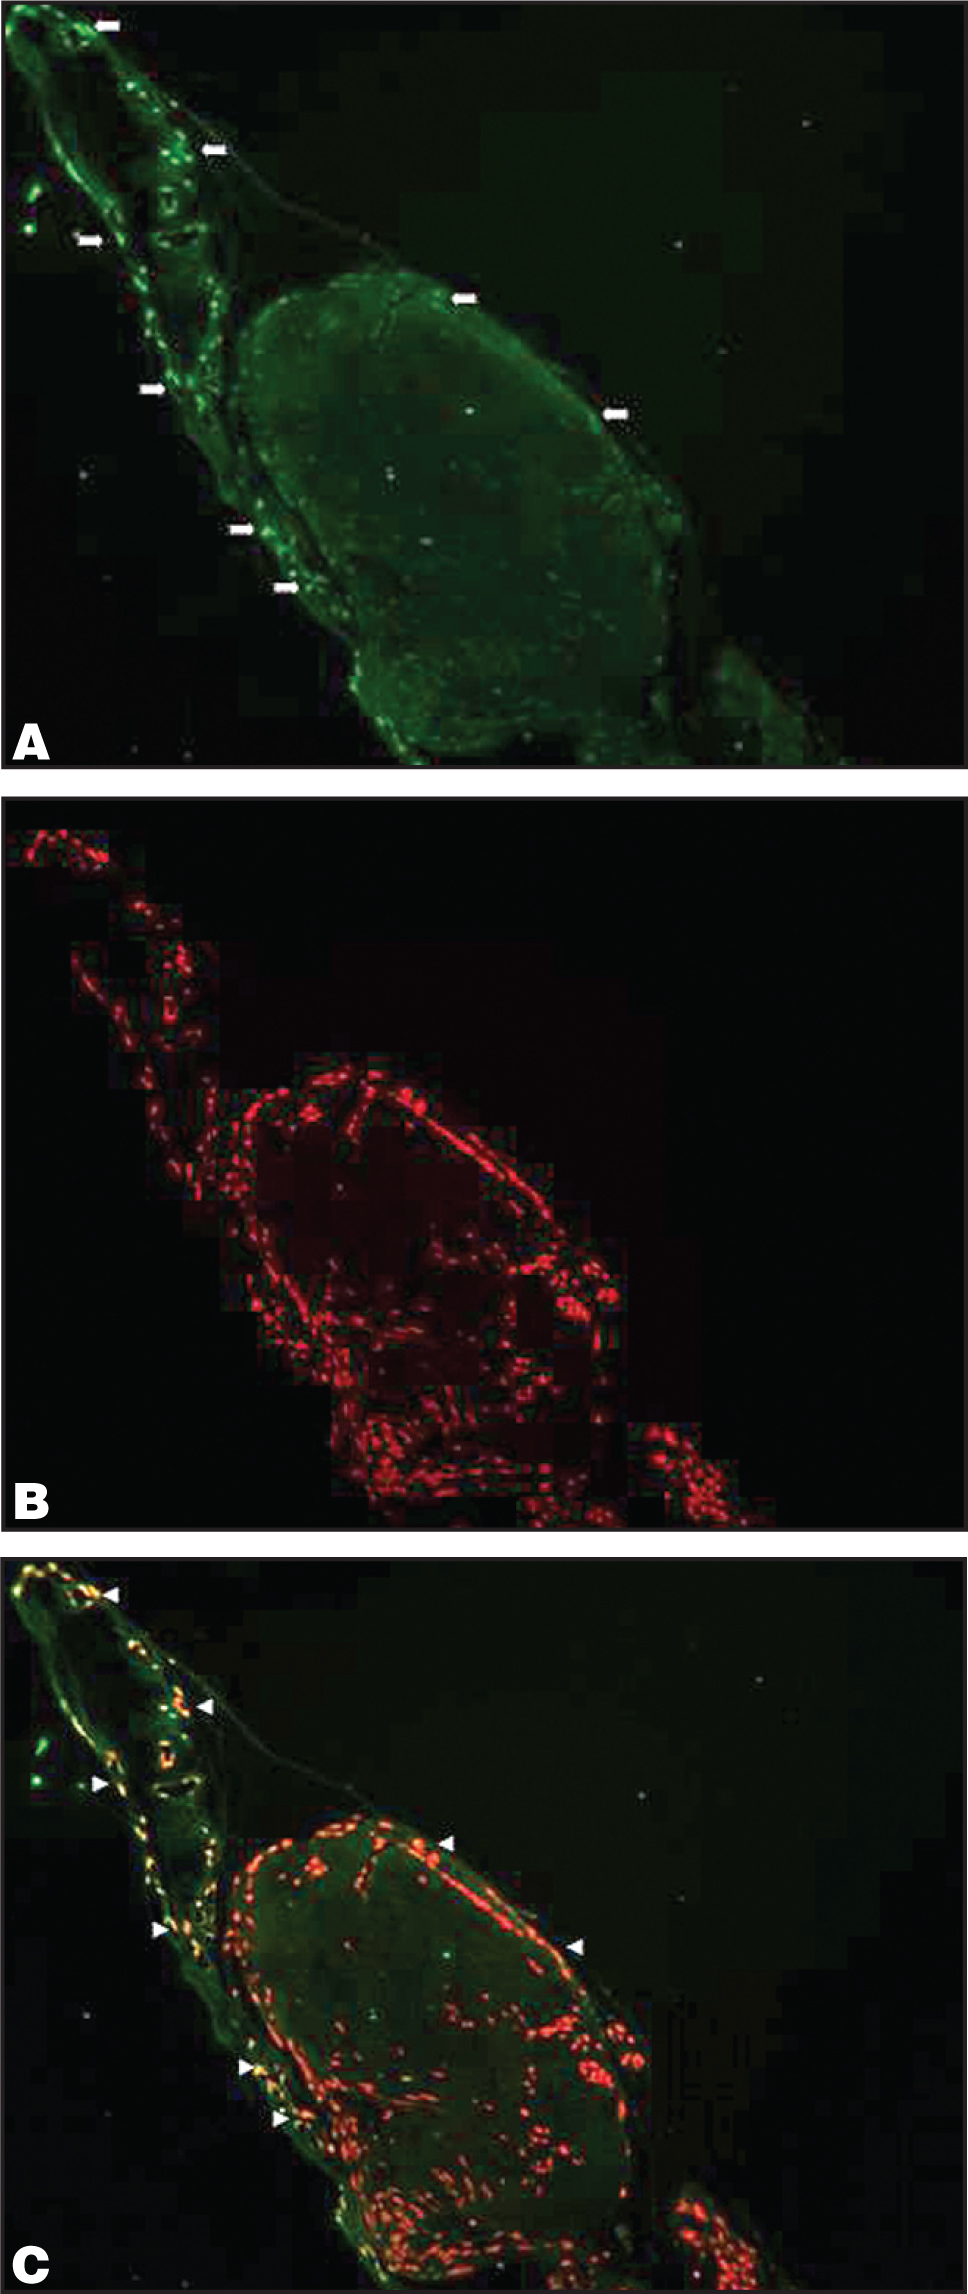 Photomicrographs of Fibrovascular Diabetic Membranes Excised at Surgery. (A) Arrows Indicate in Situ Terminal Deoxynucleotidyl Transferase-Mediated dUTP Nick End Labeling (TUNEL)-Positive Cells Revealed by Fluorescence. (B) Propidium Iodide-Red Fluorescence Reveals Cell Nuclei. Superimposition of (A) and (B), Arrows Indicate Positive Apoptotic Cells Revealed by Fluorescence (C).